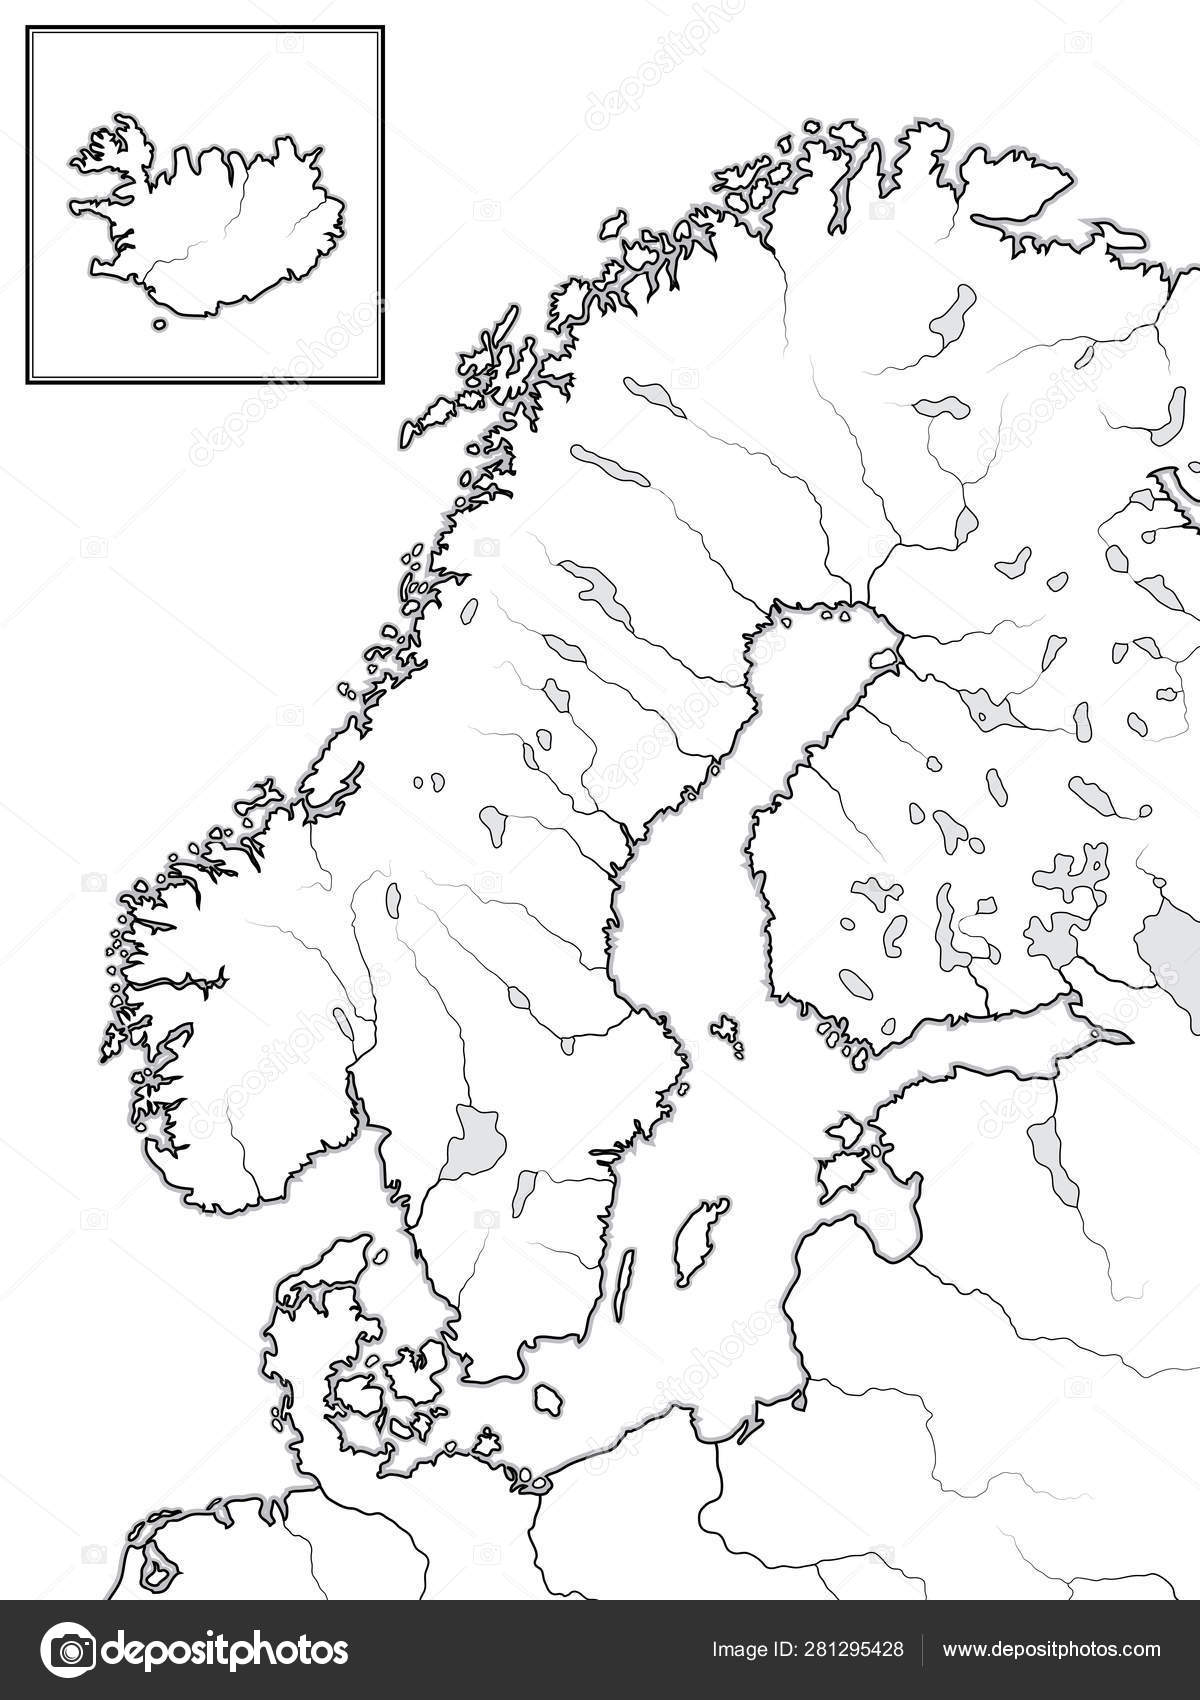 Map of The SCANDINAVIAN Lands: Scandinavia, Sweden, Norway, Finland In Ad Map Of Scandinavia on map of sweden, map of holland, map of norway, map of ireland, map of benelux, map of british isles, map of iceland, map of england, map of canada, map of austria, map of australia, map of germany, map of georgia, map of africa, map of pakistan, map of the pyrenees, map of denmark, map of netherlands,